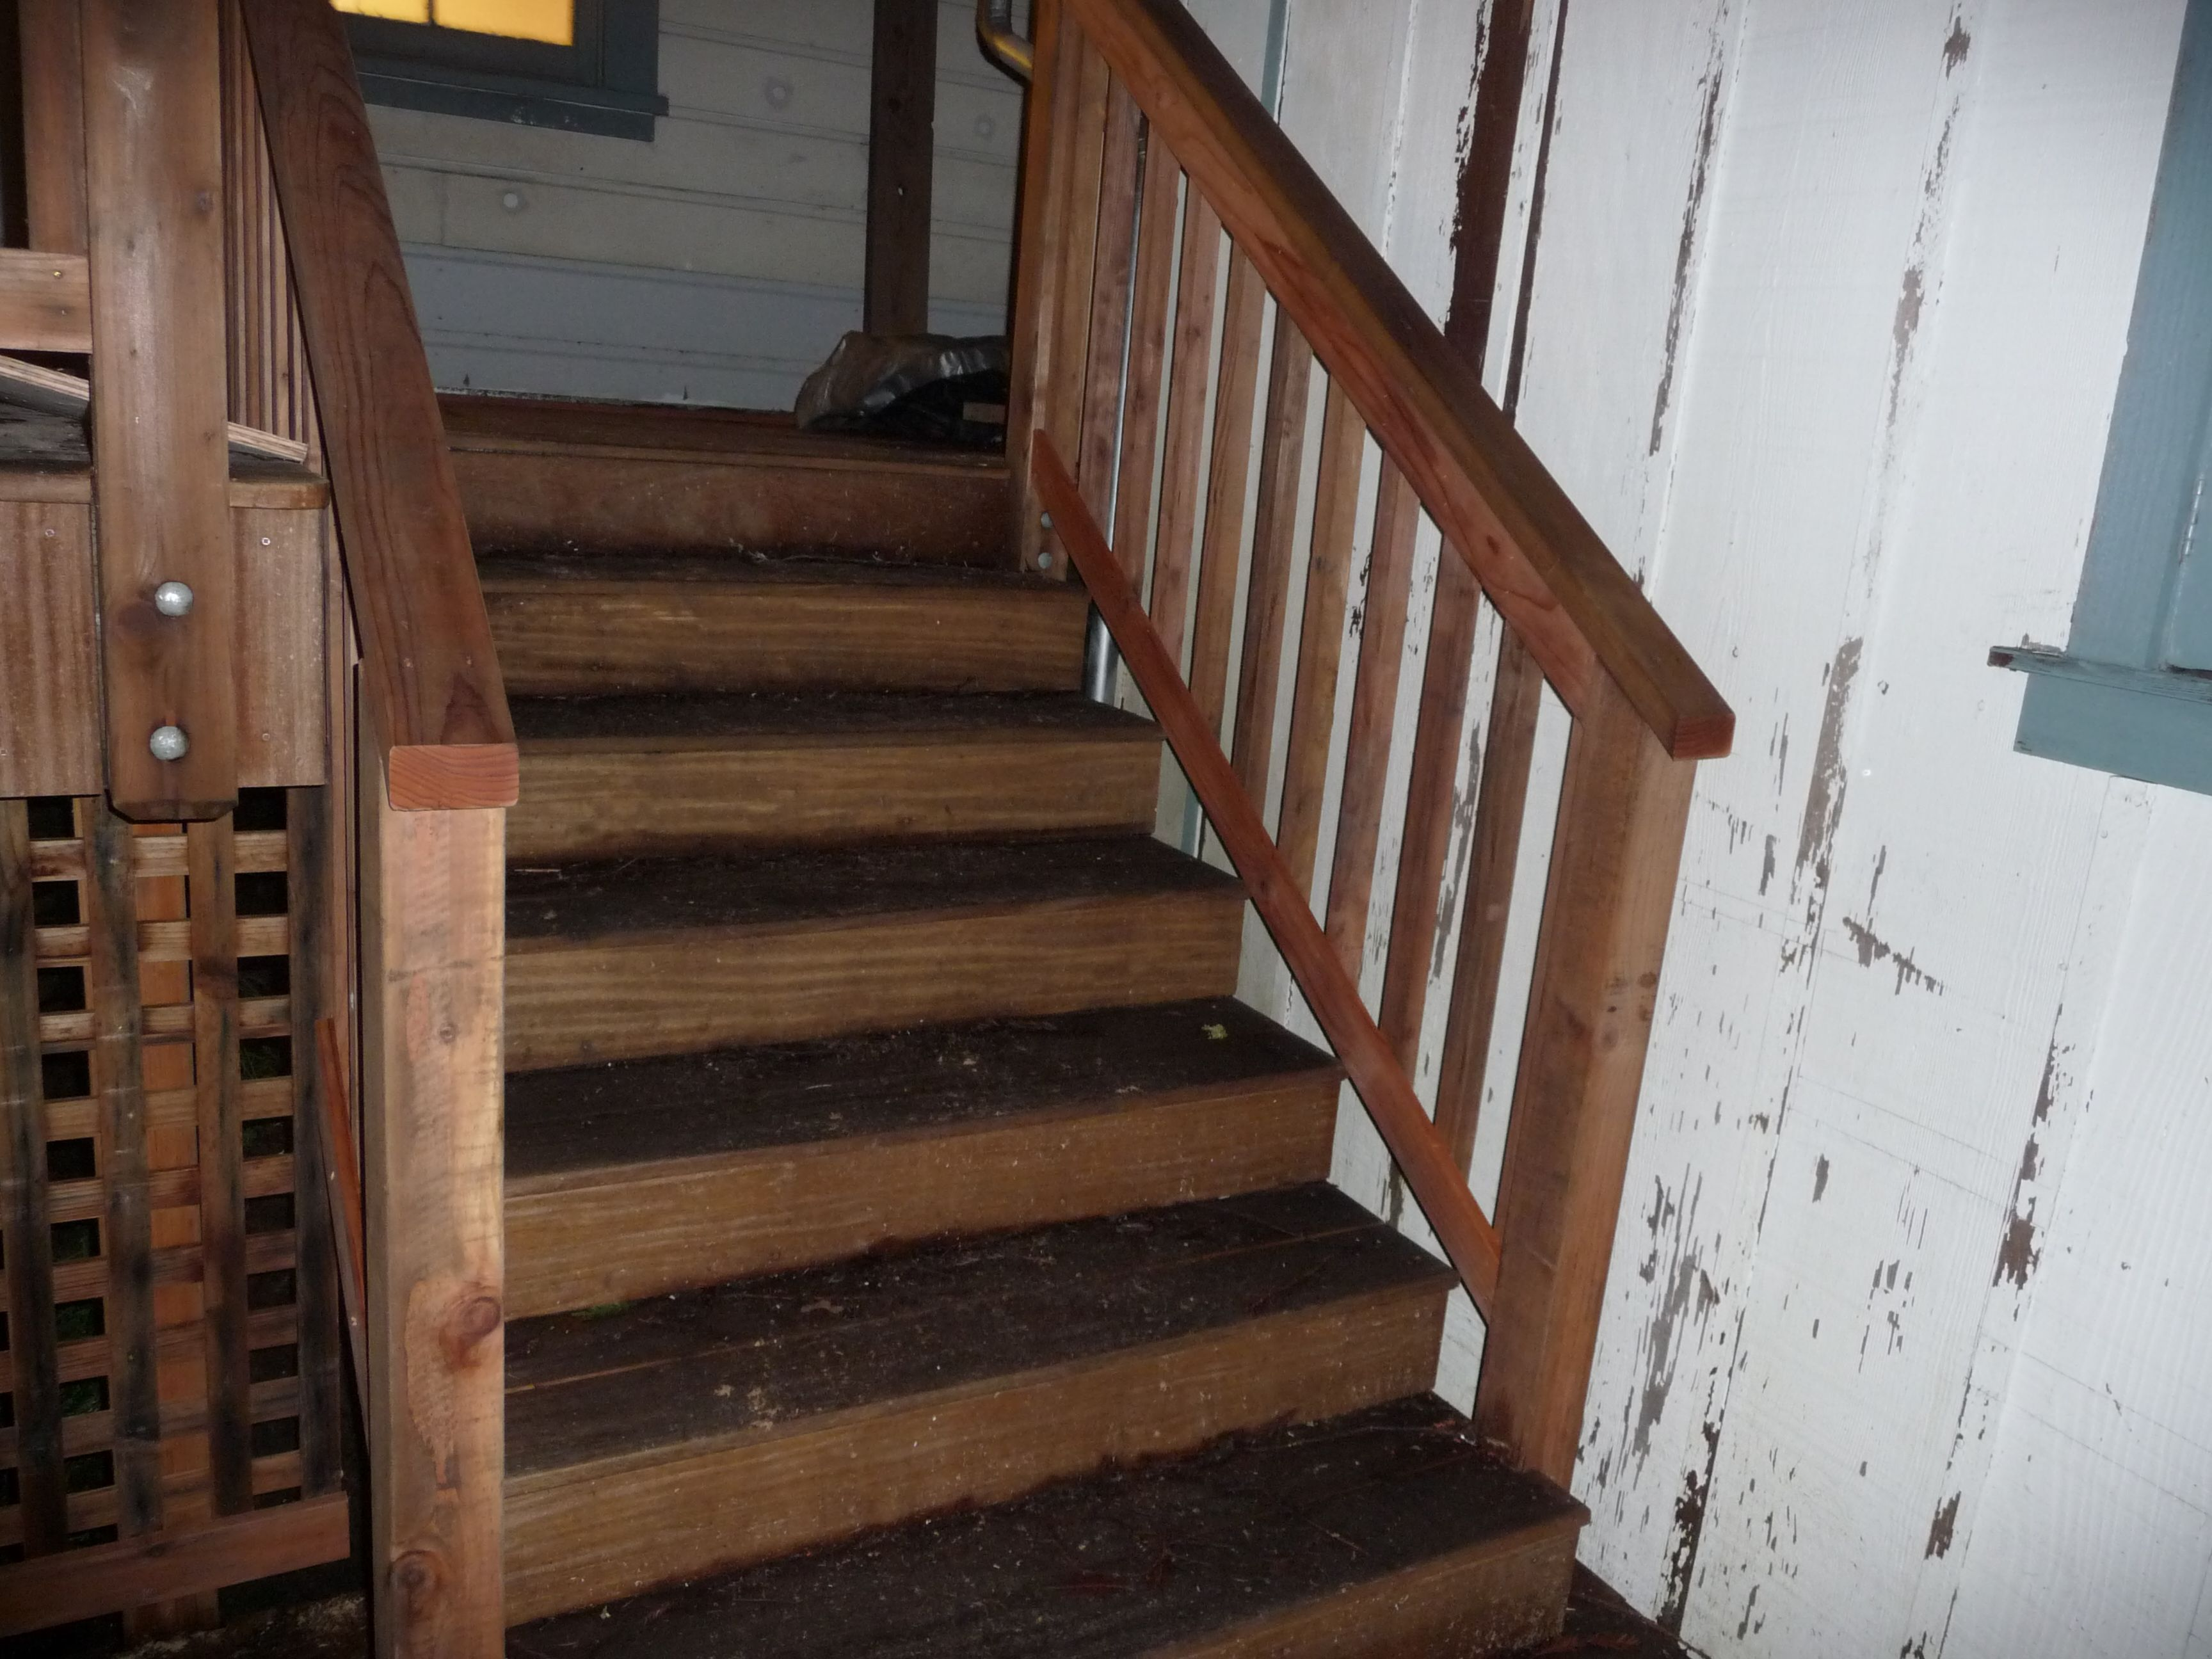 Wood Deck Stair Railing View 100s Of Deck Railing Ideas Http://awoodrailing.